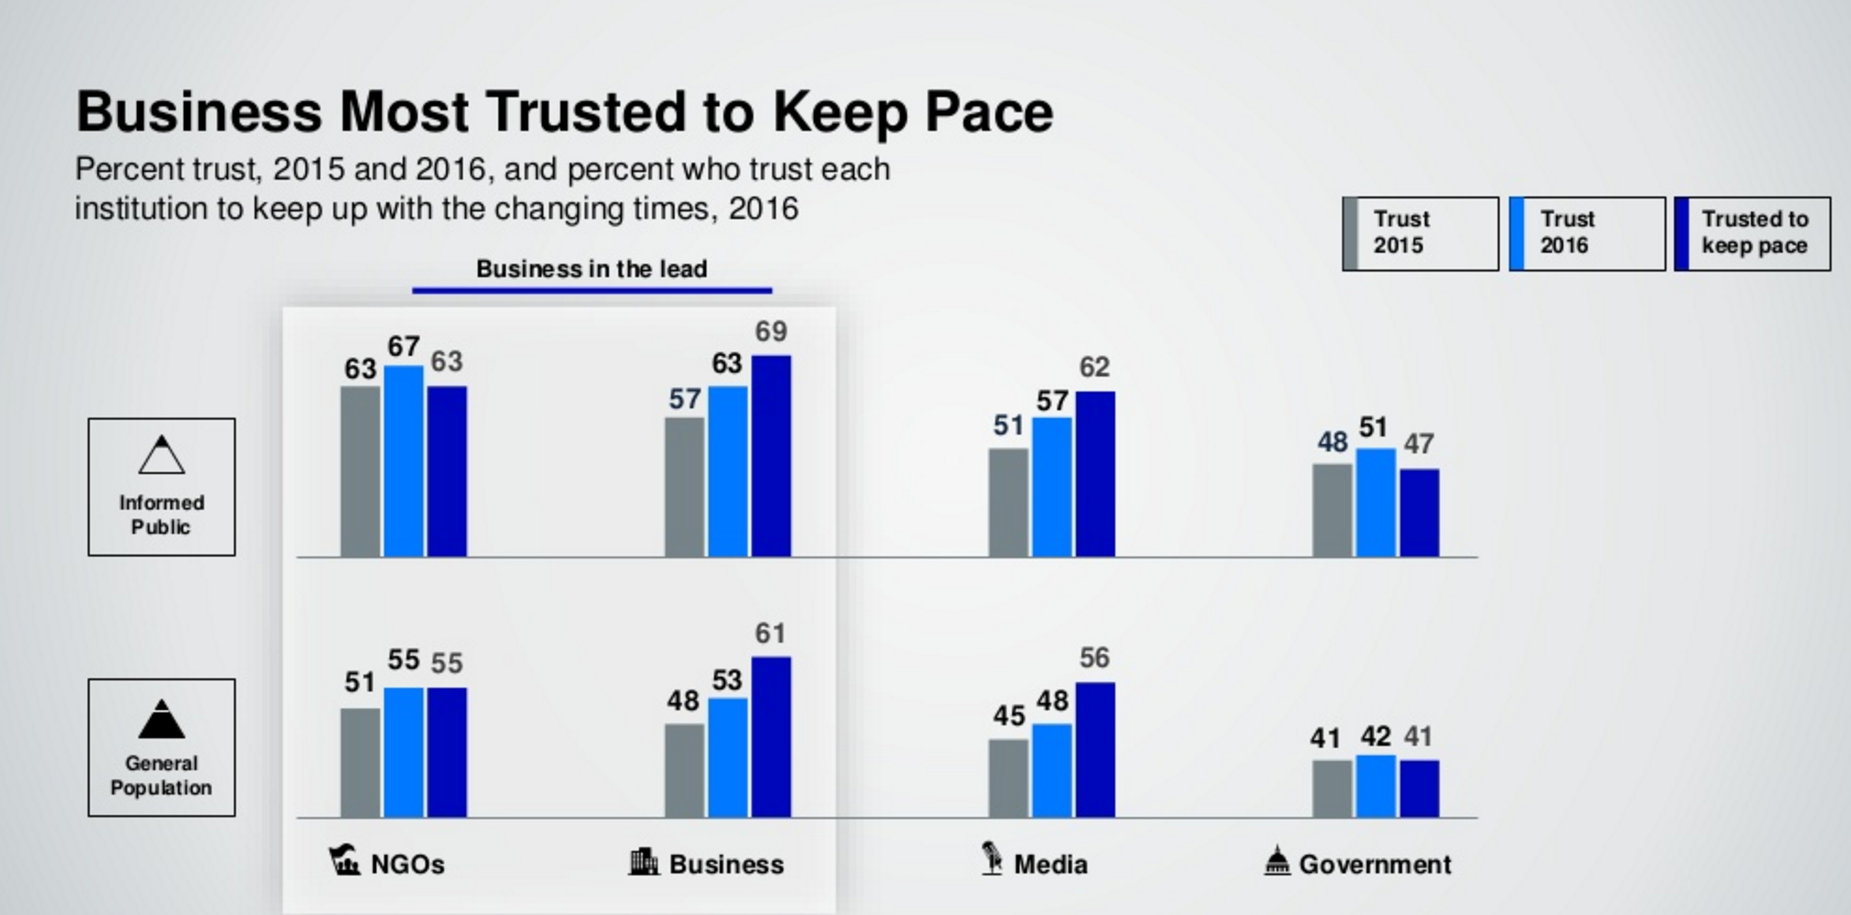 Business most trusted to keep pace